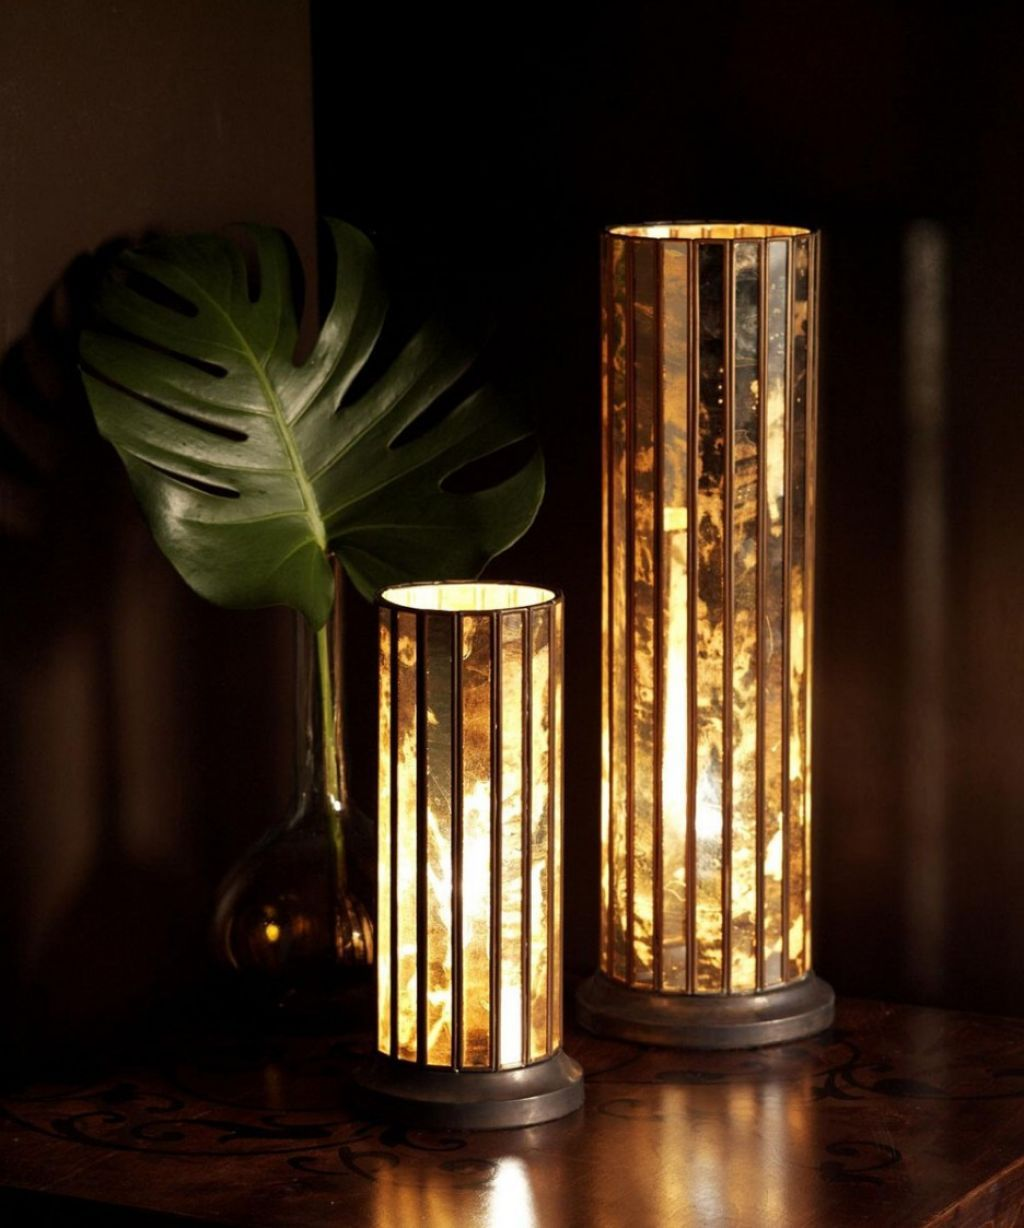 Tall Cordless Lamp Practical Cordless Lamp Gallery Small Table Lamp Decorative Table Lamps Battery Operated Table Lamps